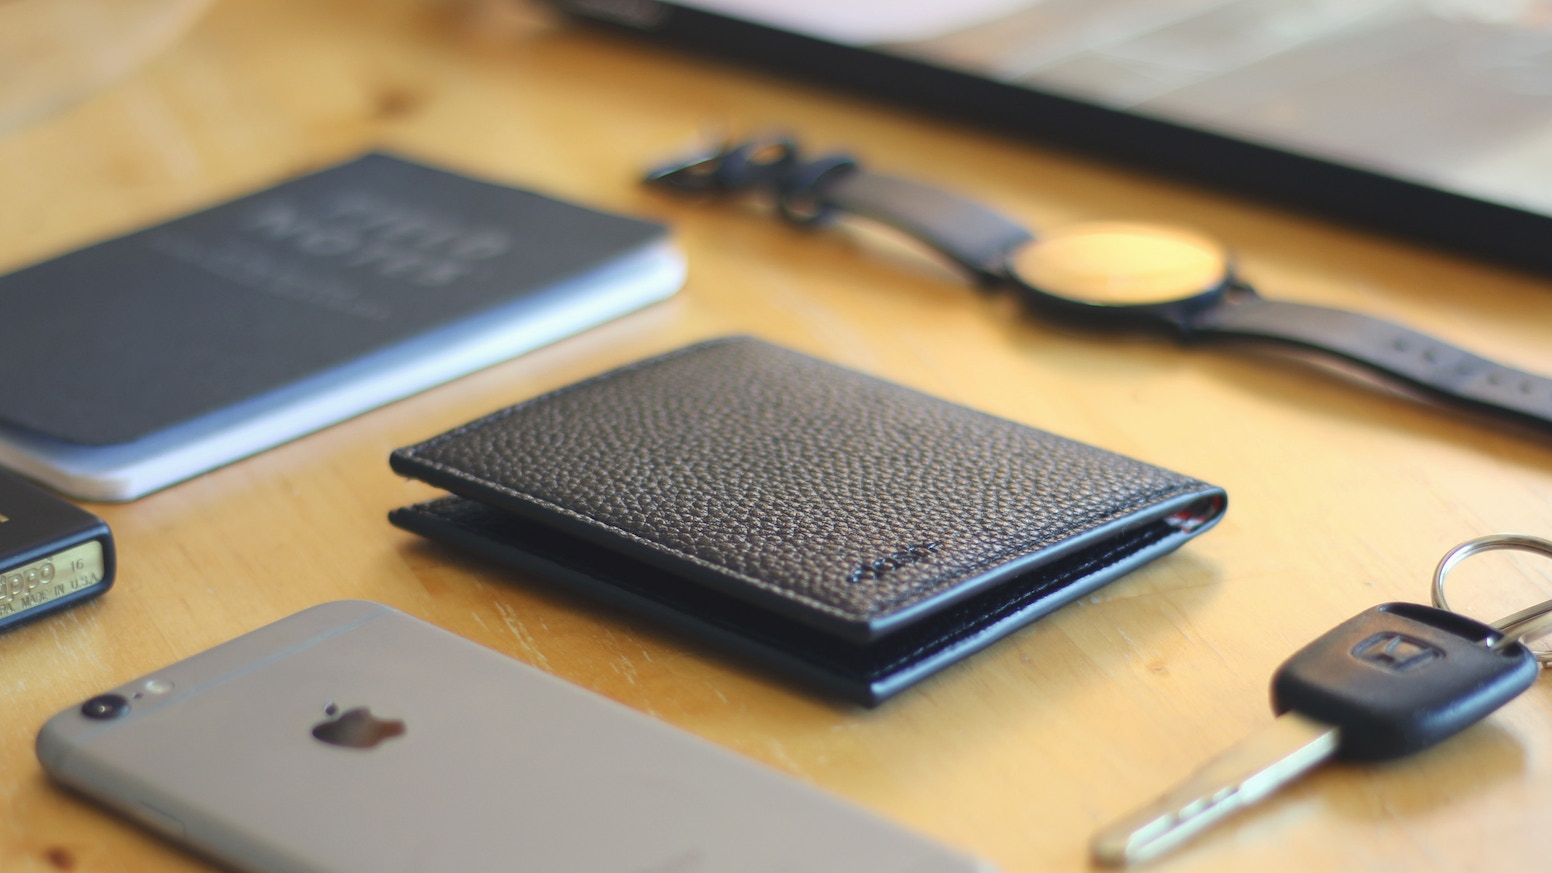 The Best Minimalist Slim BiFold Wallet. Carries everything you need, maintains a super thin profile, and protects your cards w/ RFID